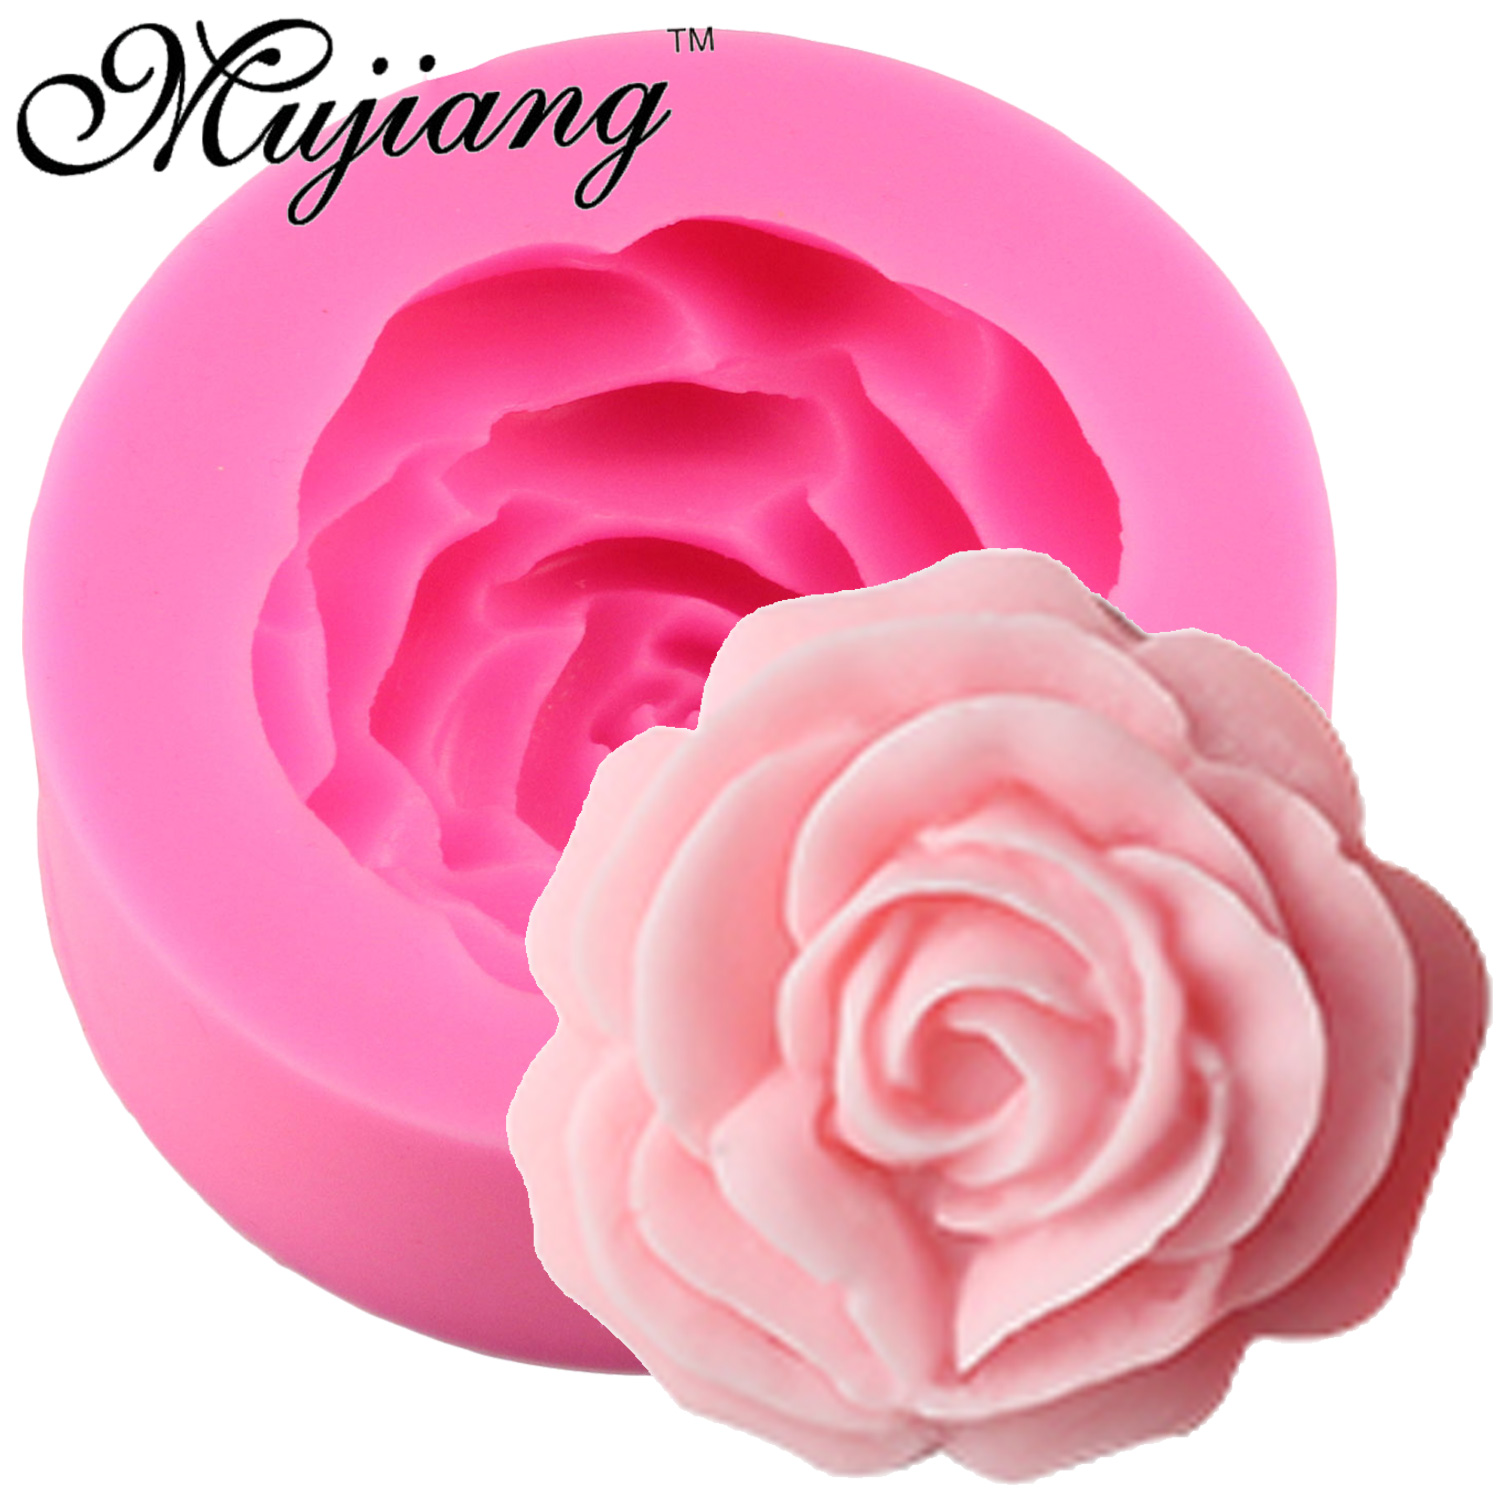 Mujiang 3D Rose Flower Candle Silicone Mold For Fondant Cake Decorating Tools Sugar Craft Chocolate Candy Fimo Clay Soap Molds